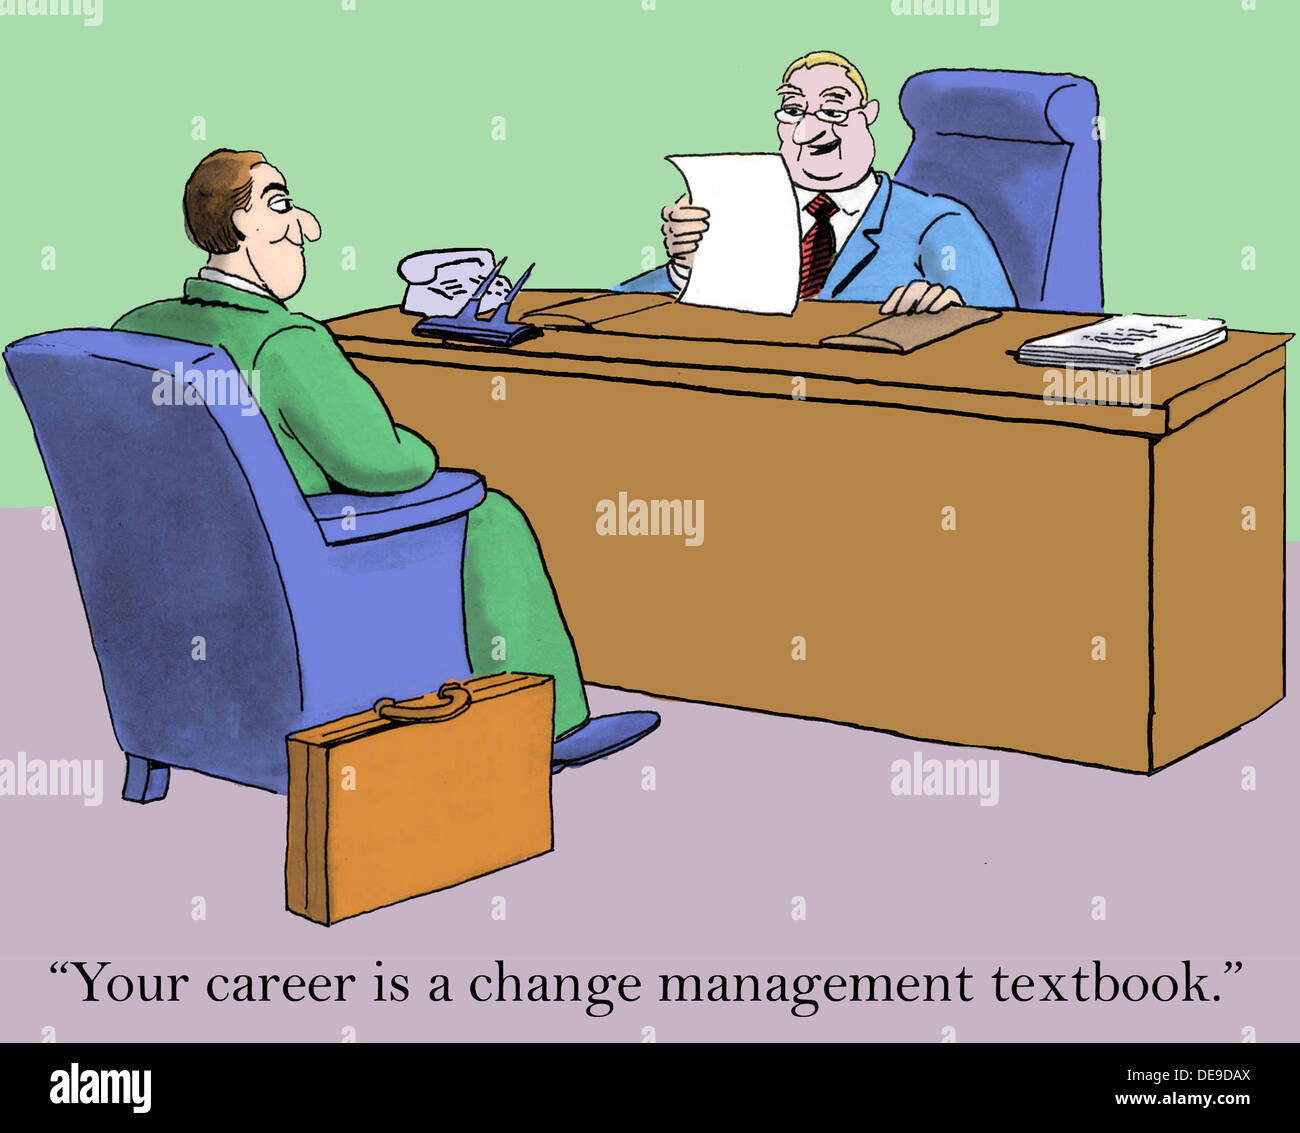 your career is a change management textbook stock photo royalty your career is a change management textbook